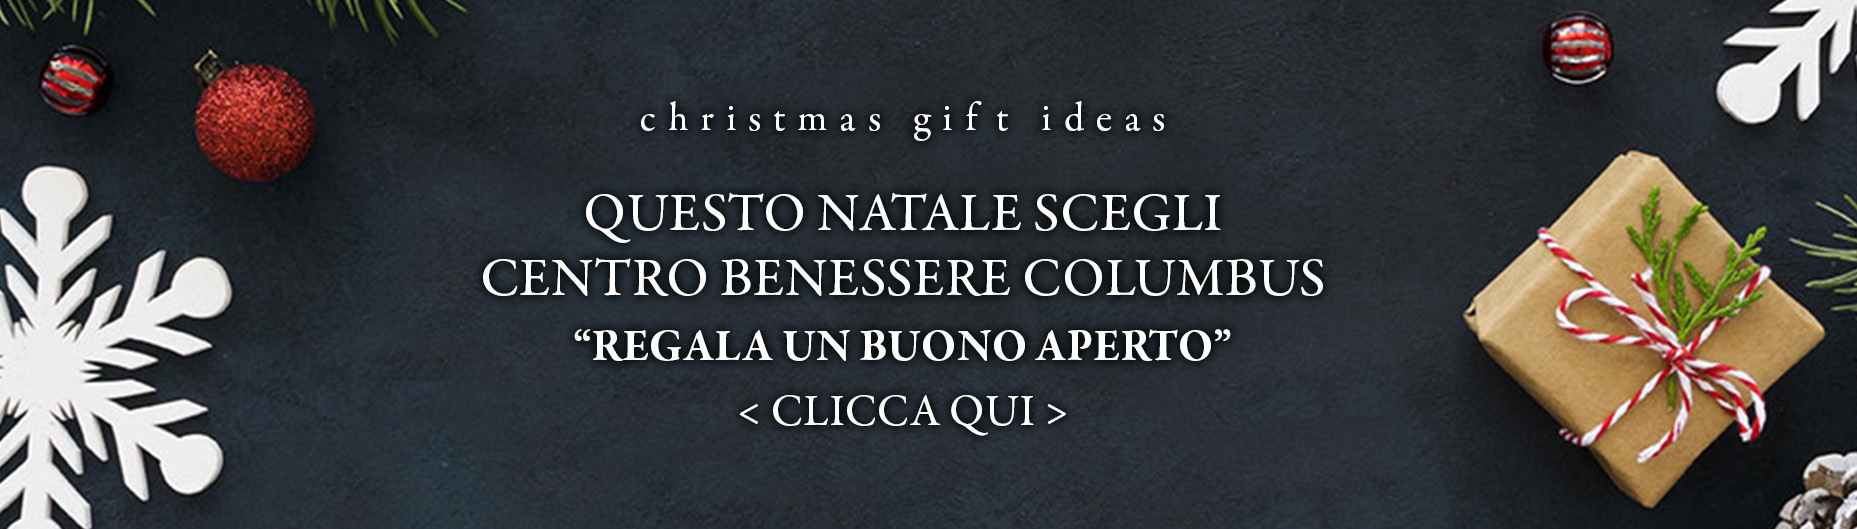 benessere natale